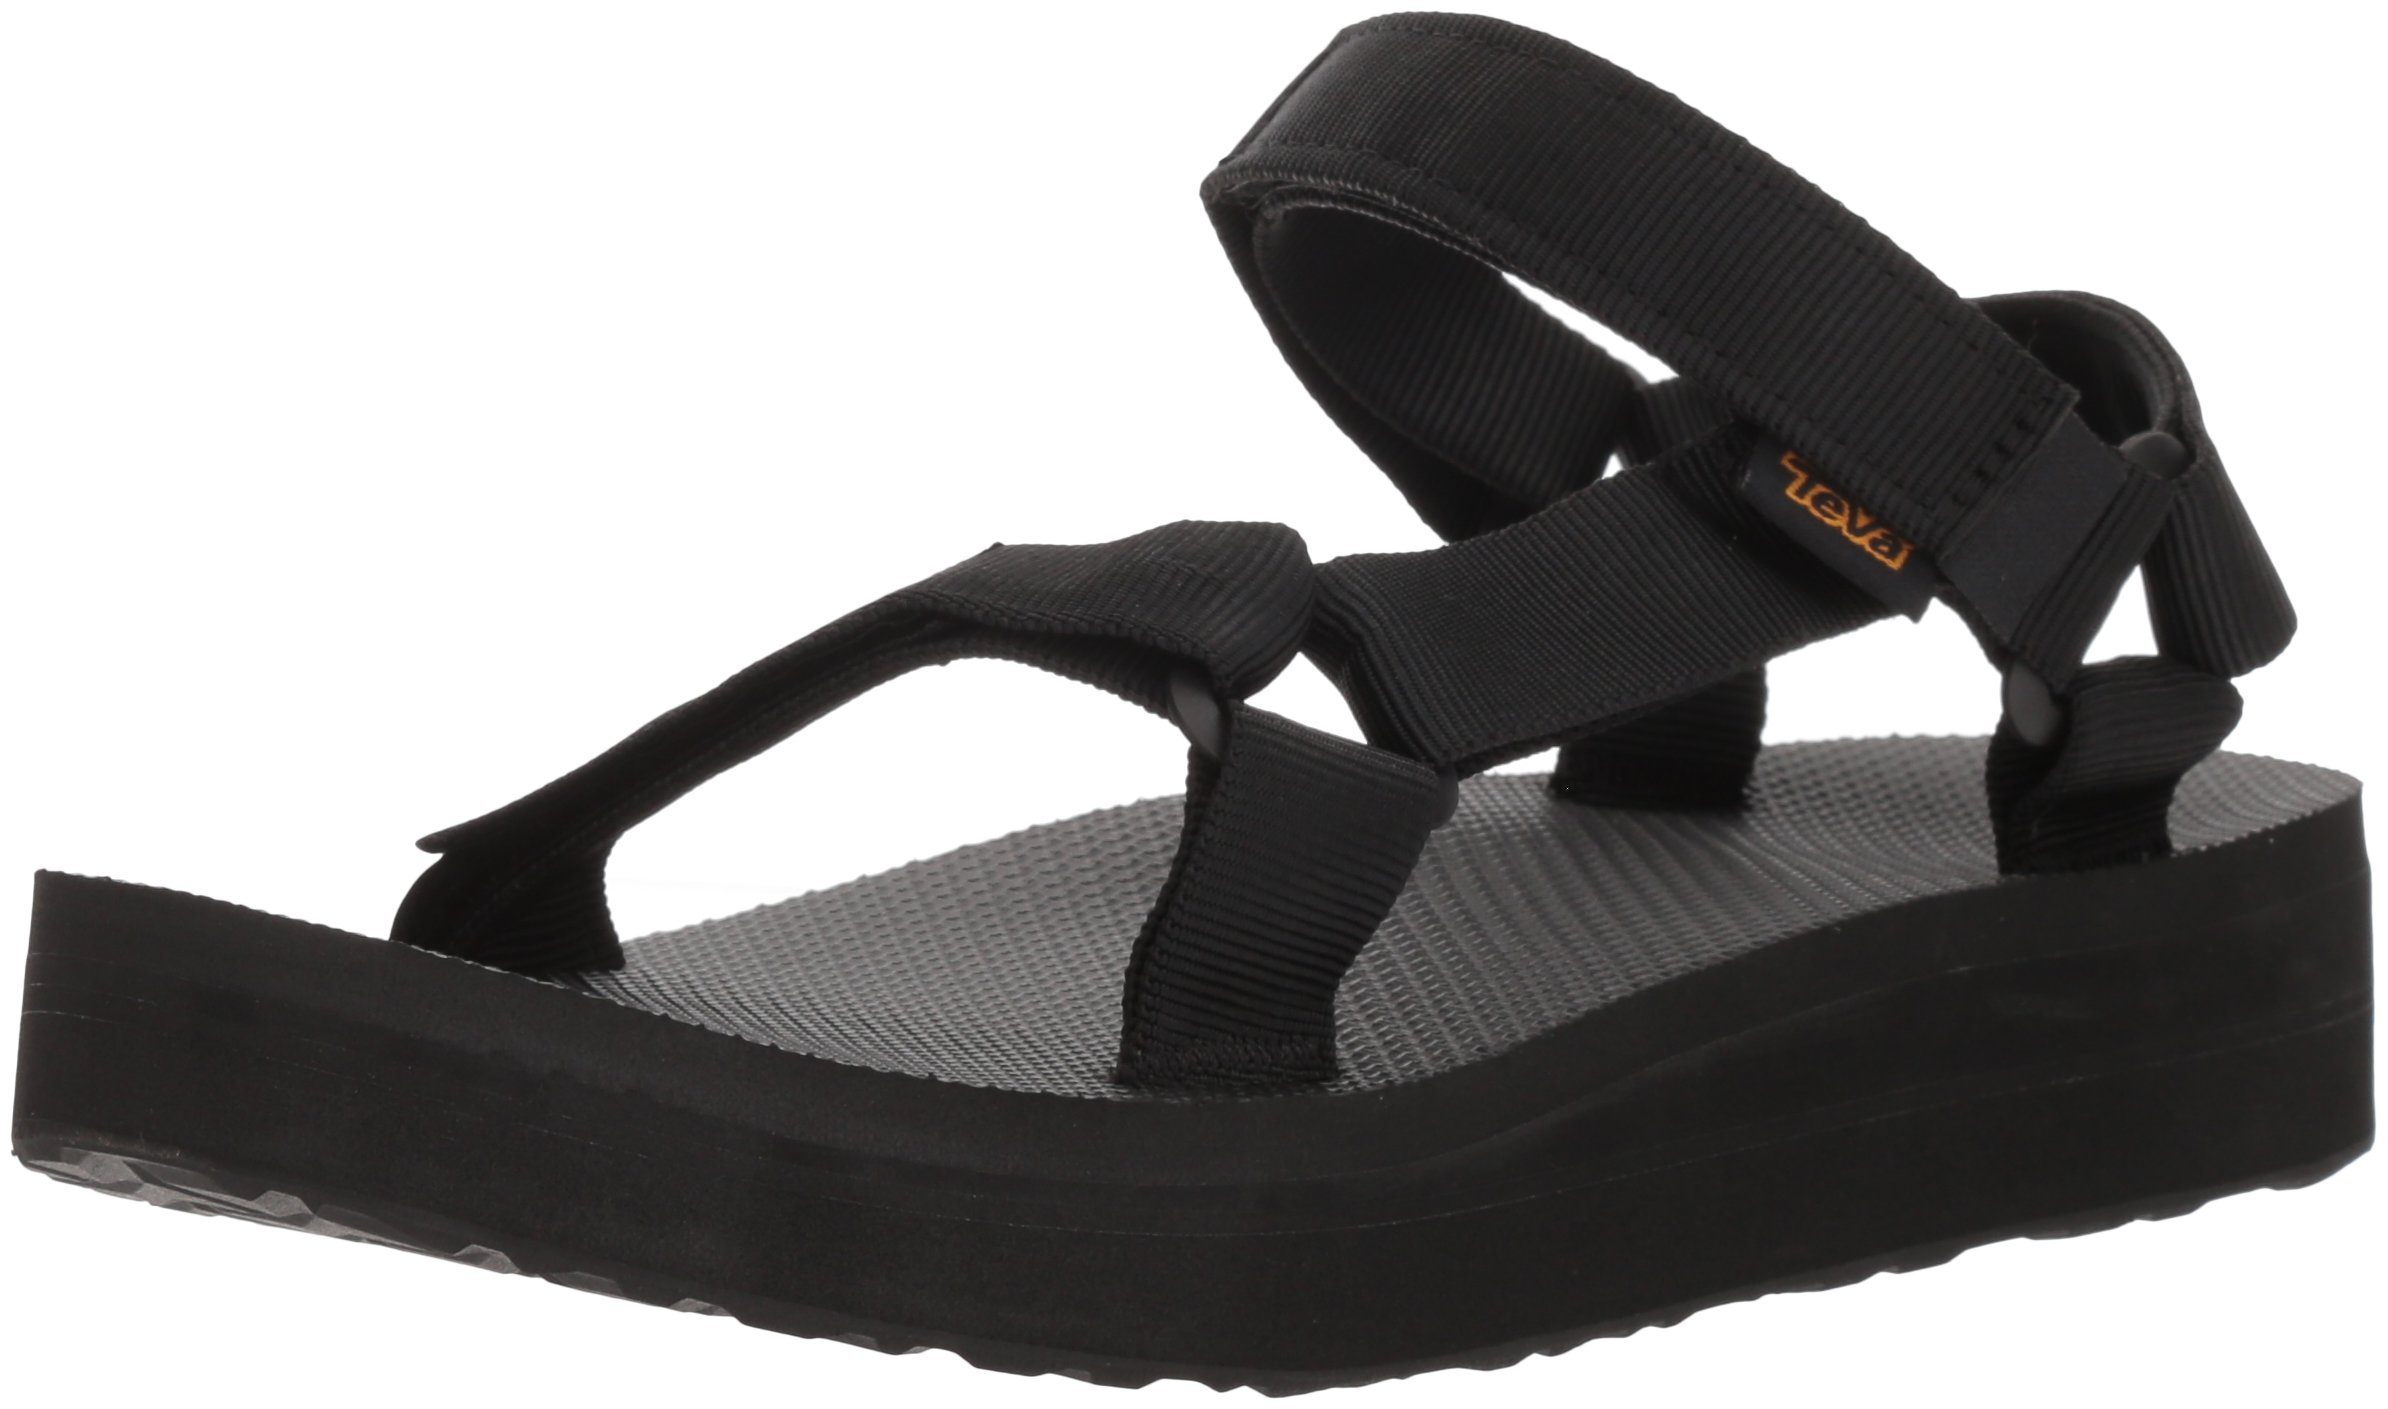 Teva Women's W MIDFORM Universal Wedge Sandal, Black, 07 M US by Teva